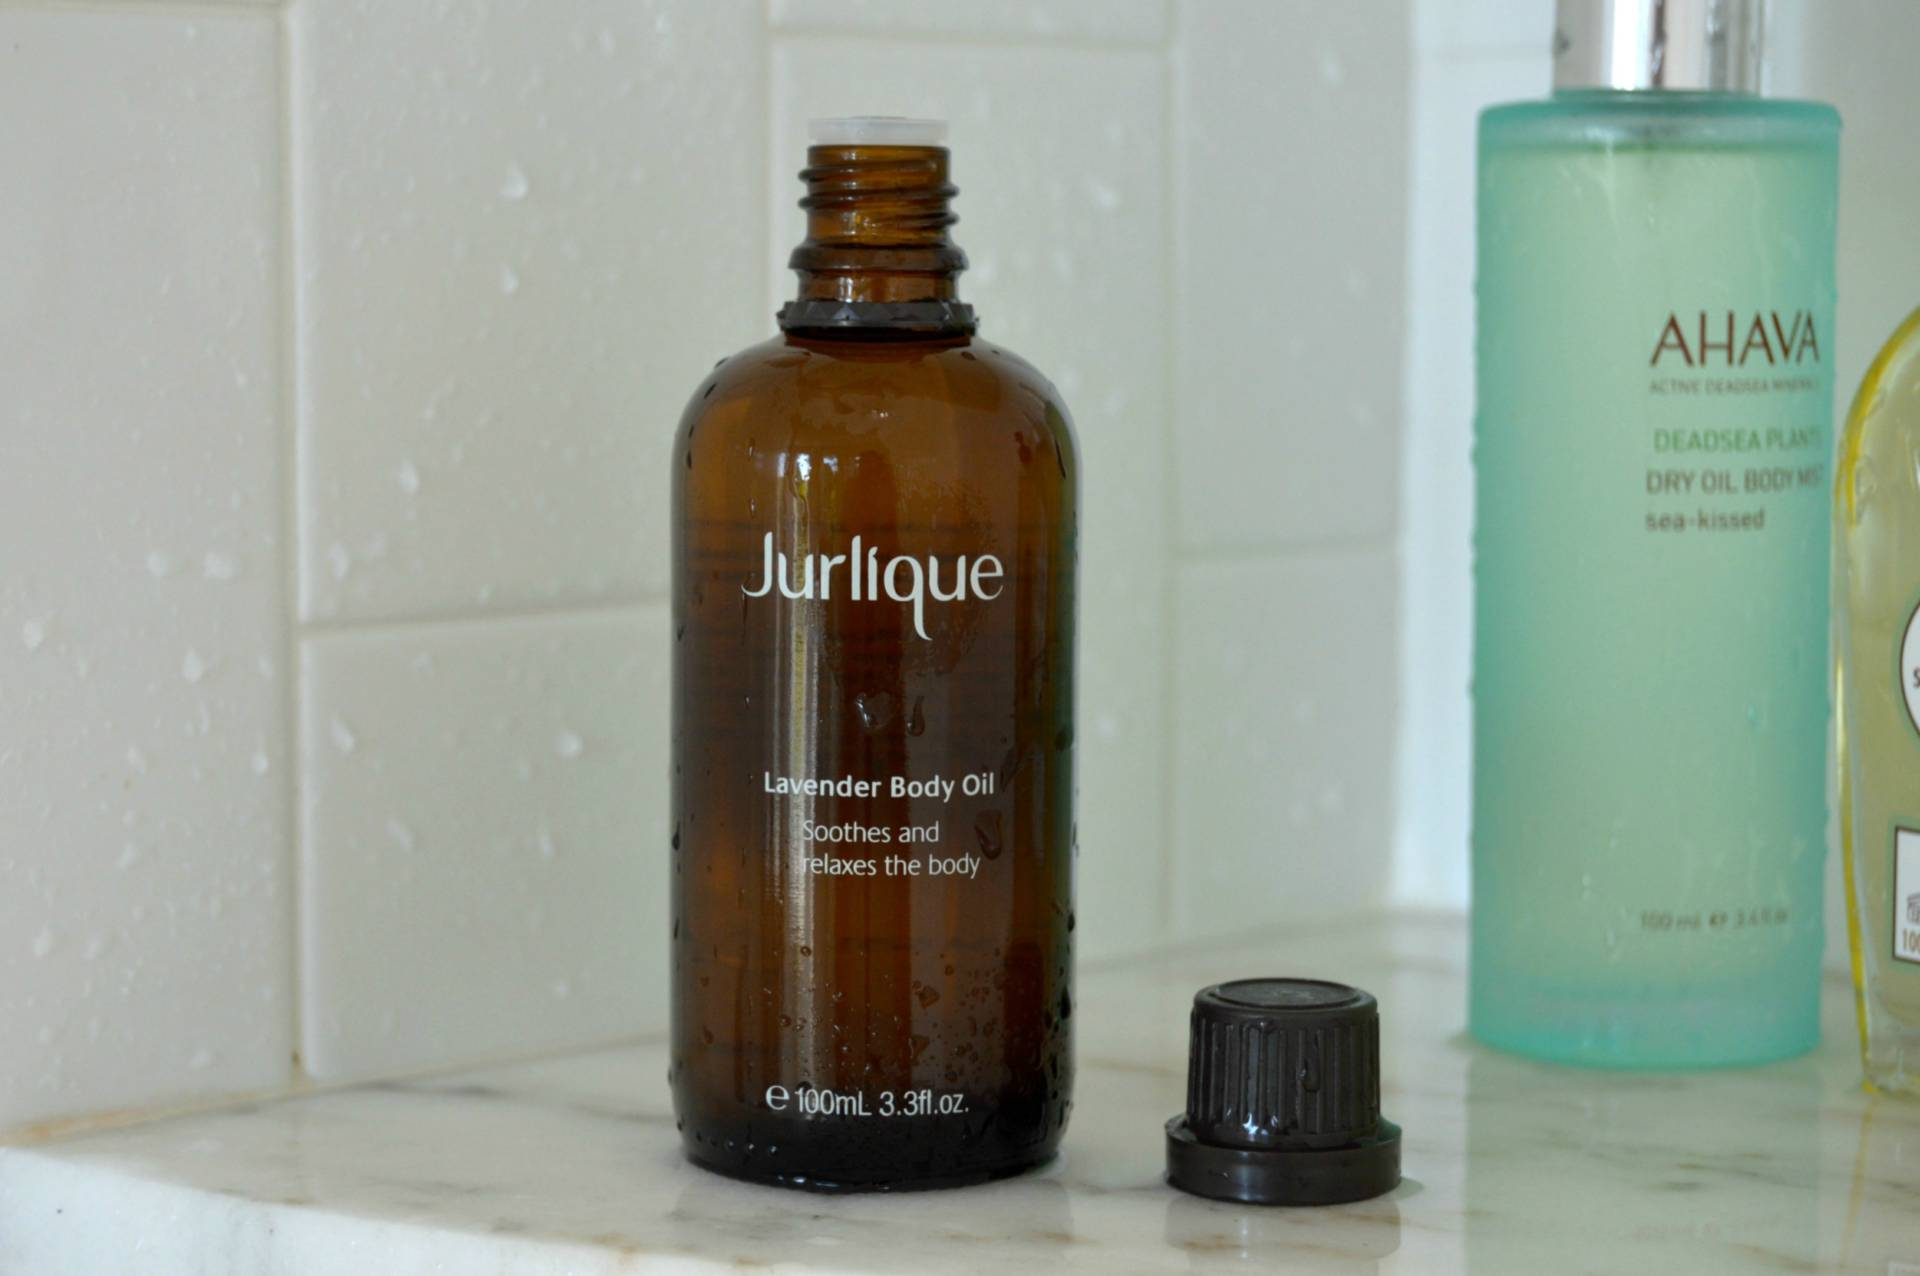 body oil edit jurlique soothing relaxing lavender review inhautepursuit